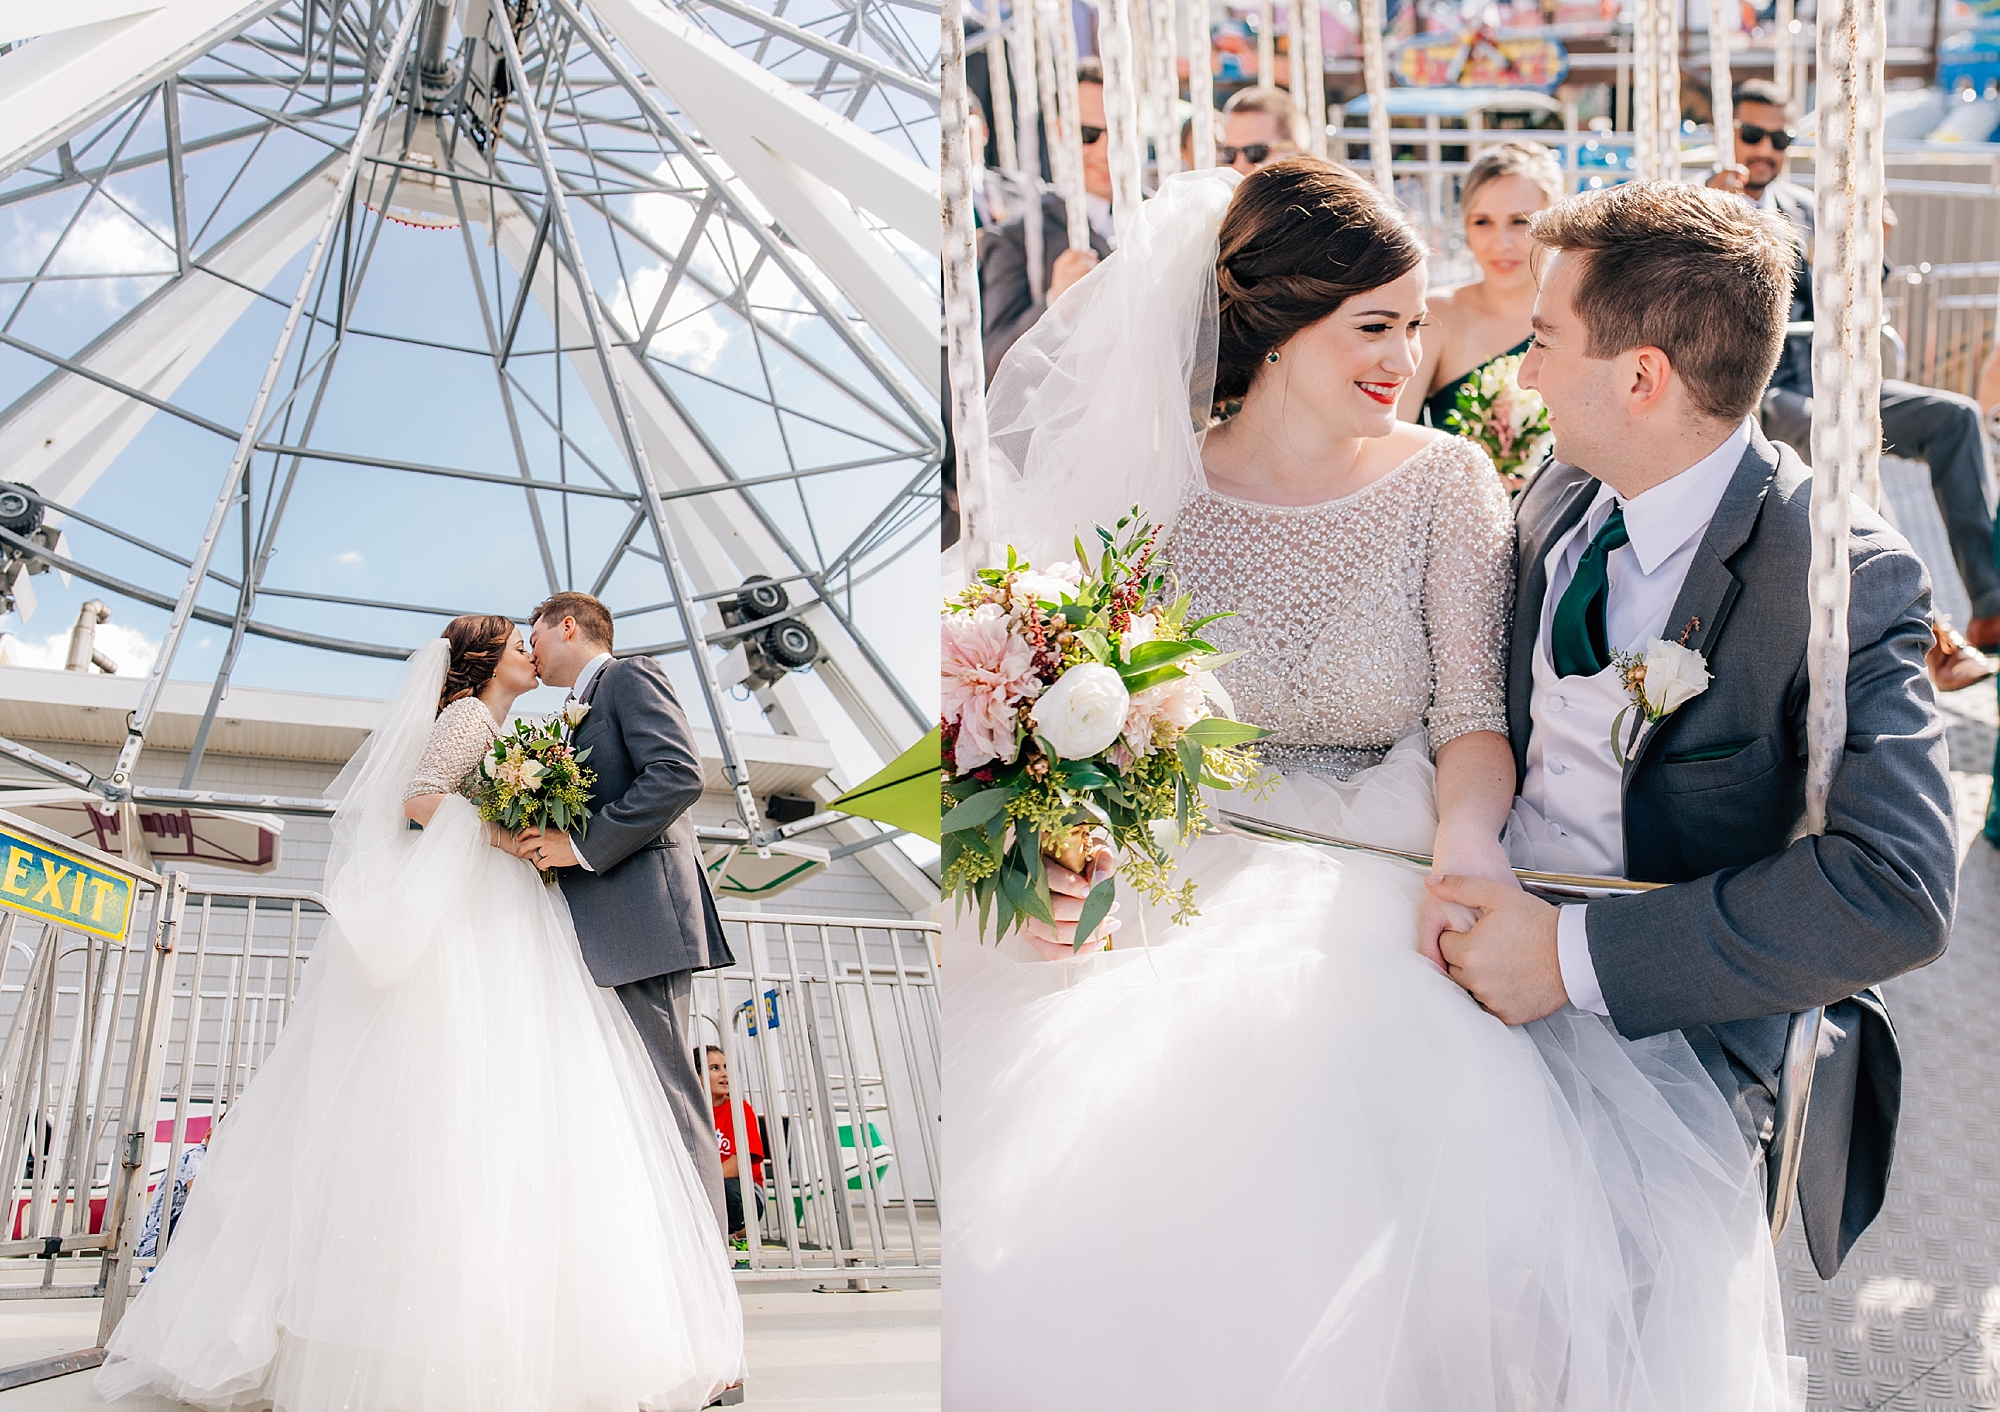 Authentic and Fun Wedding Photography in Ocean City NJ by Magdalena Studios Associate Team 0035